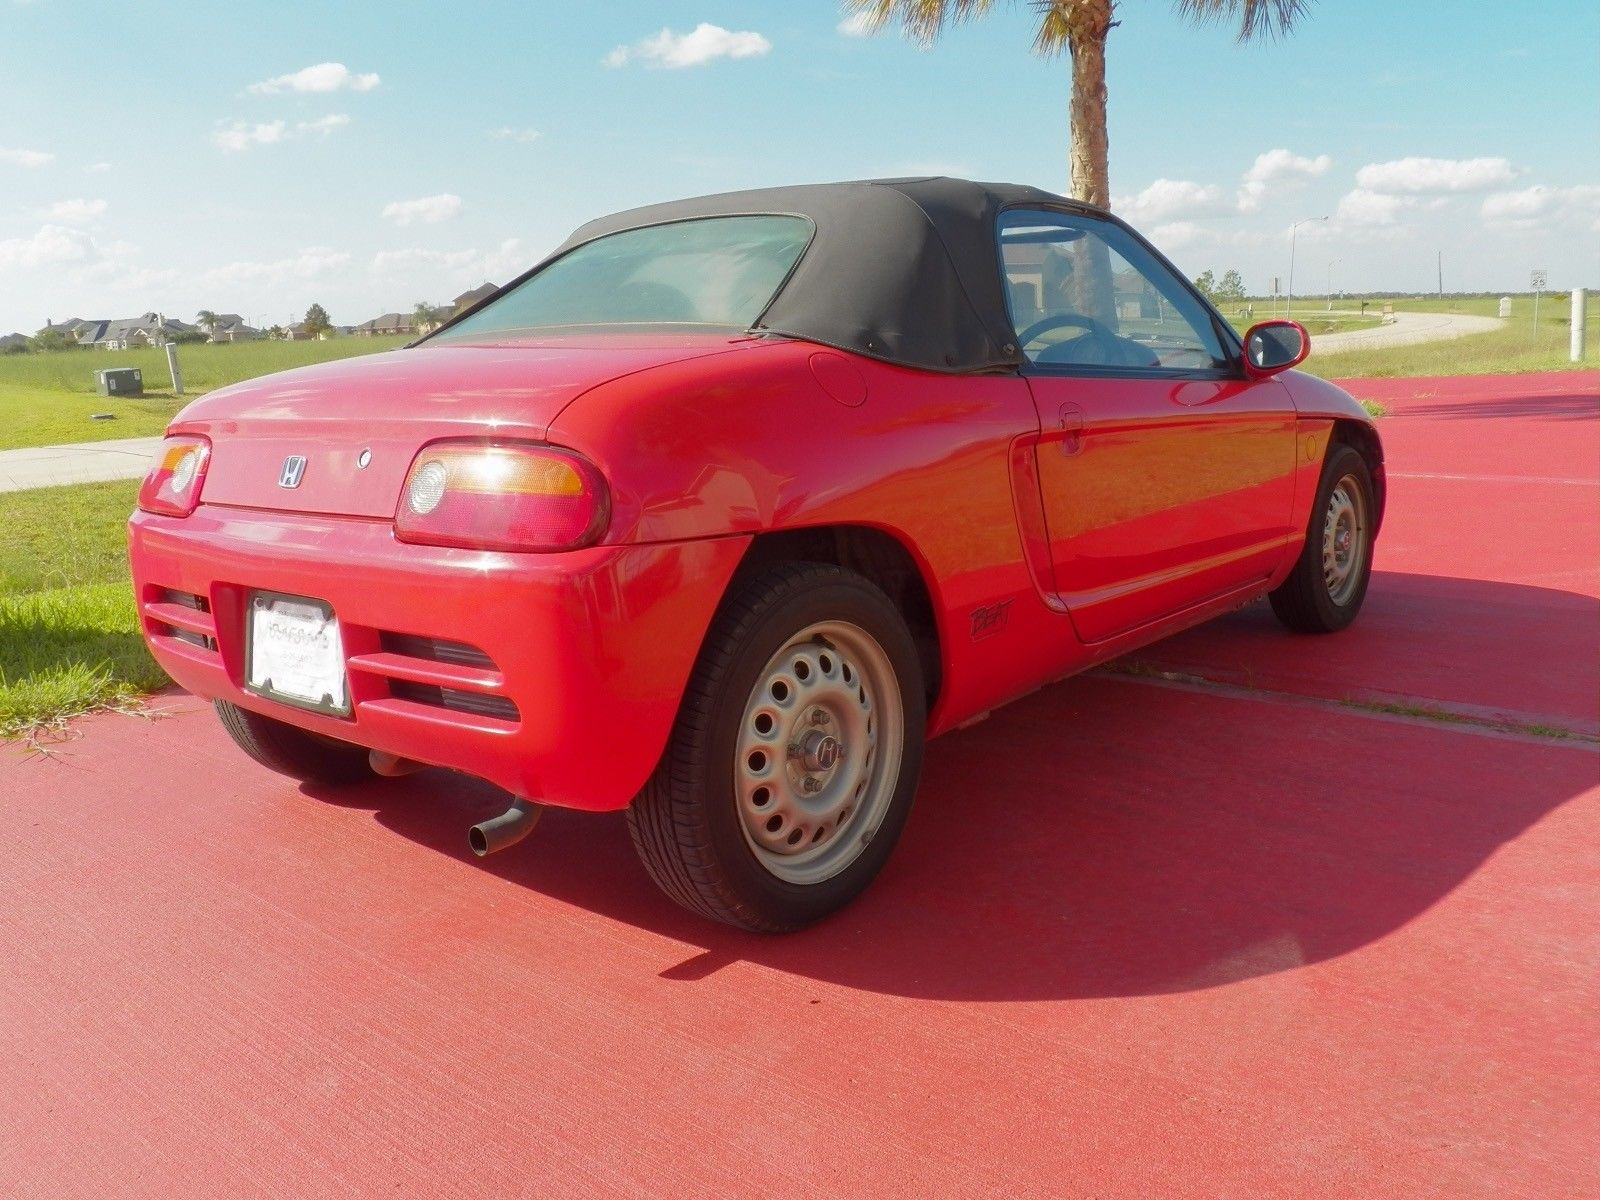 1991 Honda Beat PP1 rear 3/4